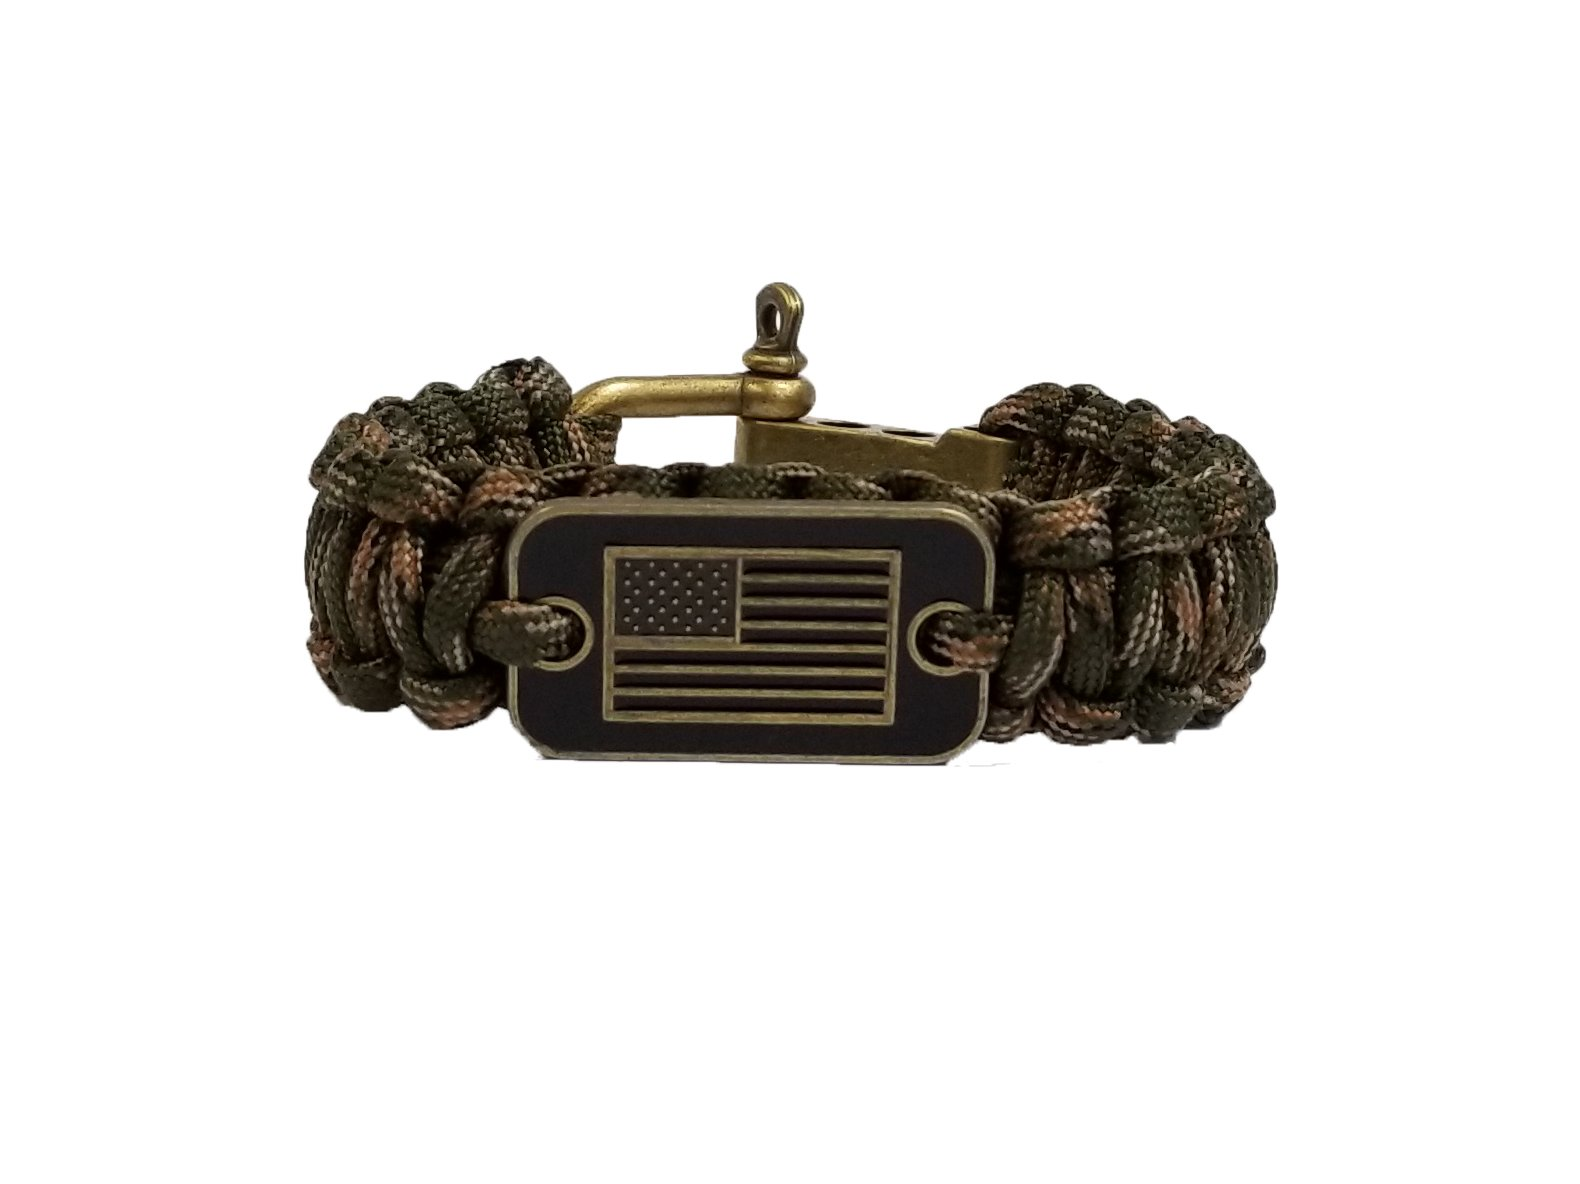 iHeartDogs Camo Paracord Bracelet | 20% of Sales are Donated to Help Pair Veterans with Shelter or Service Dogs